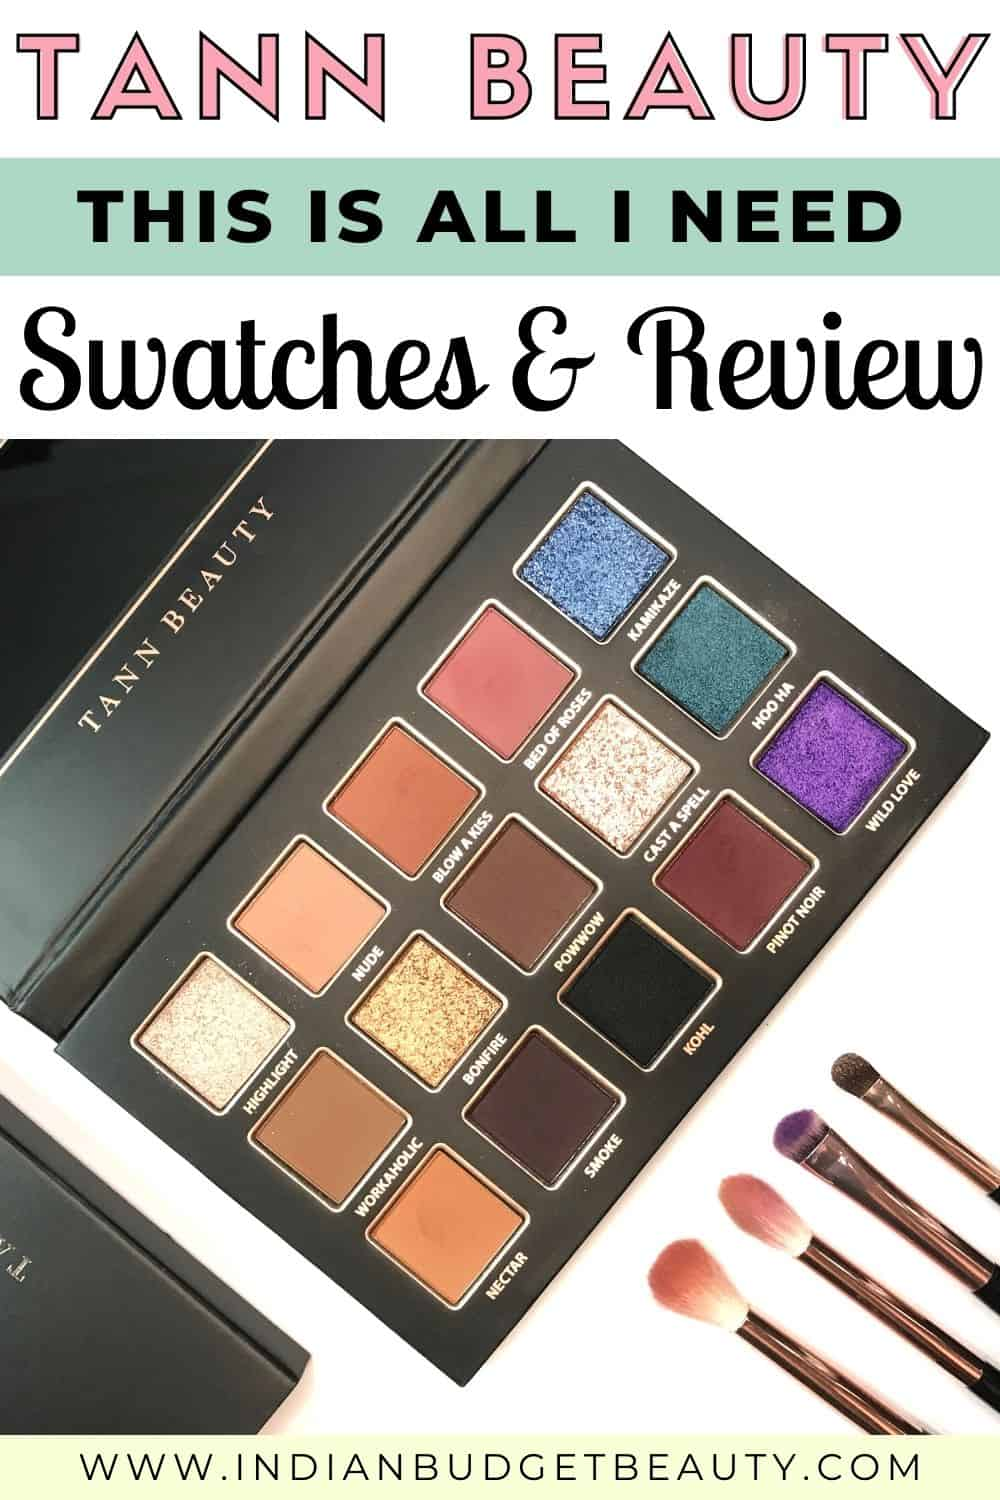 tann beauty this is all i need eyeshadow palette review